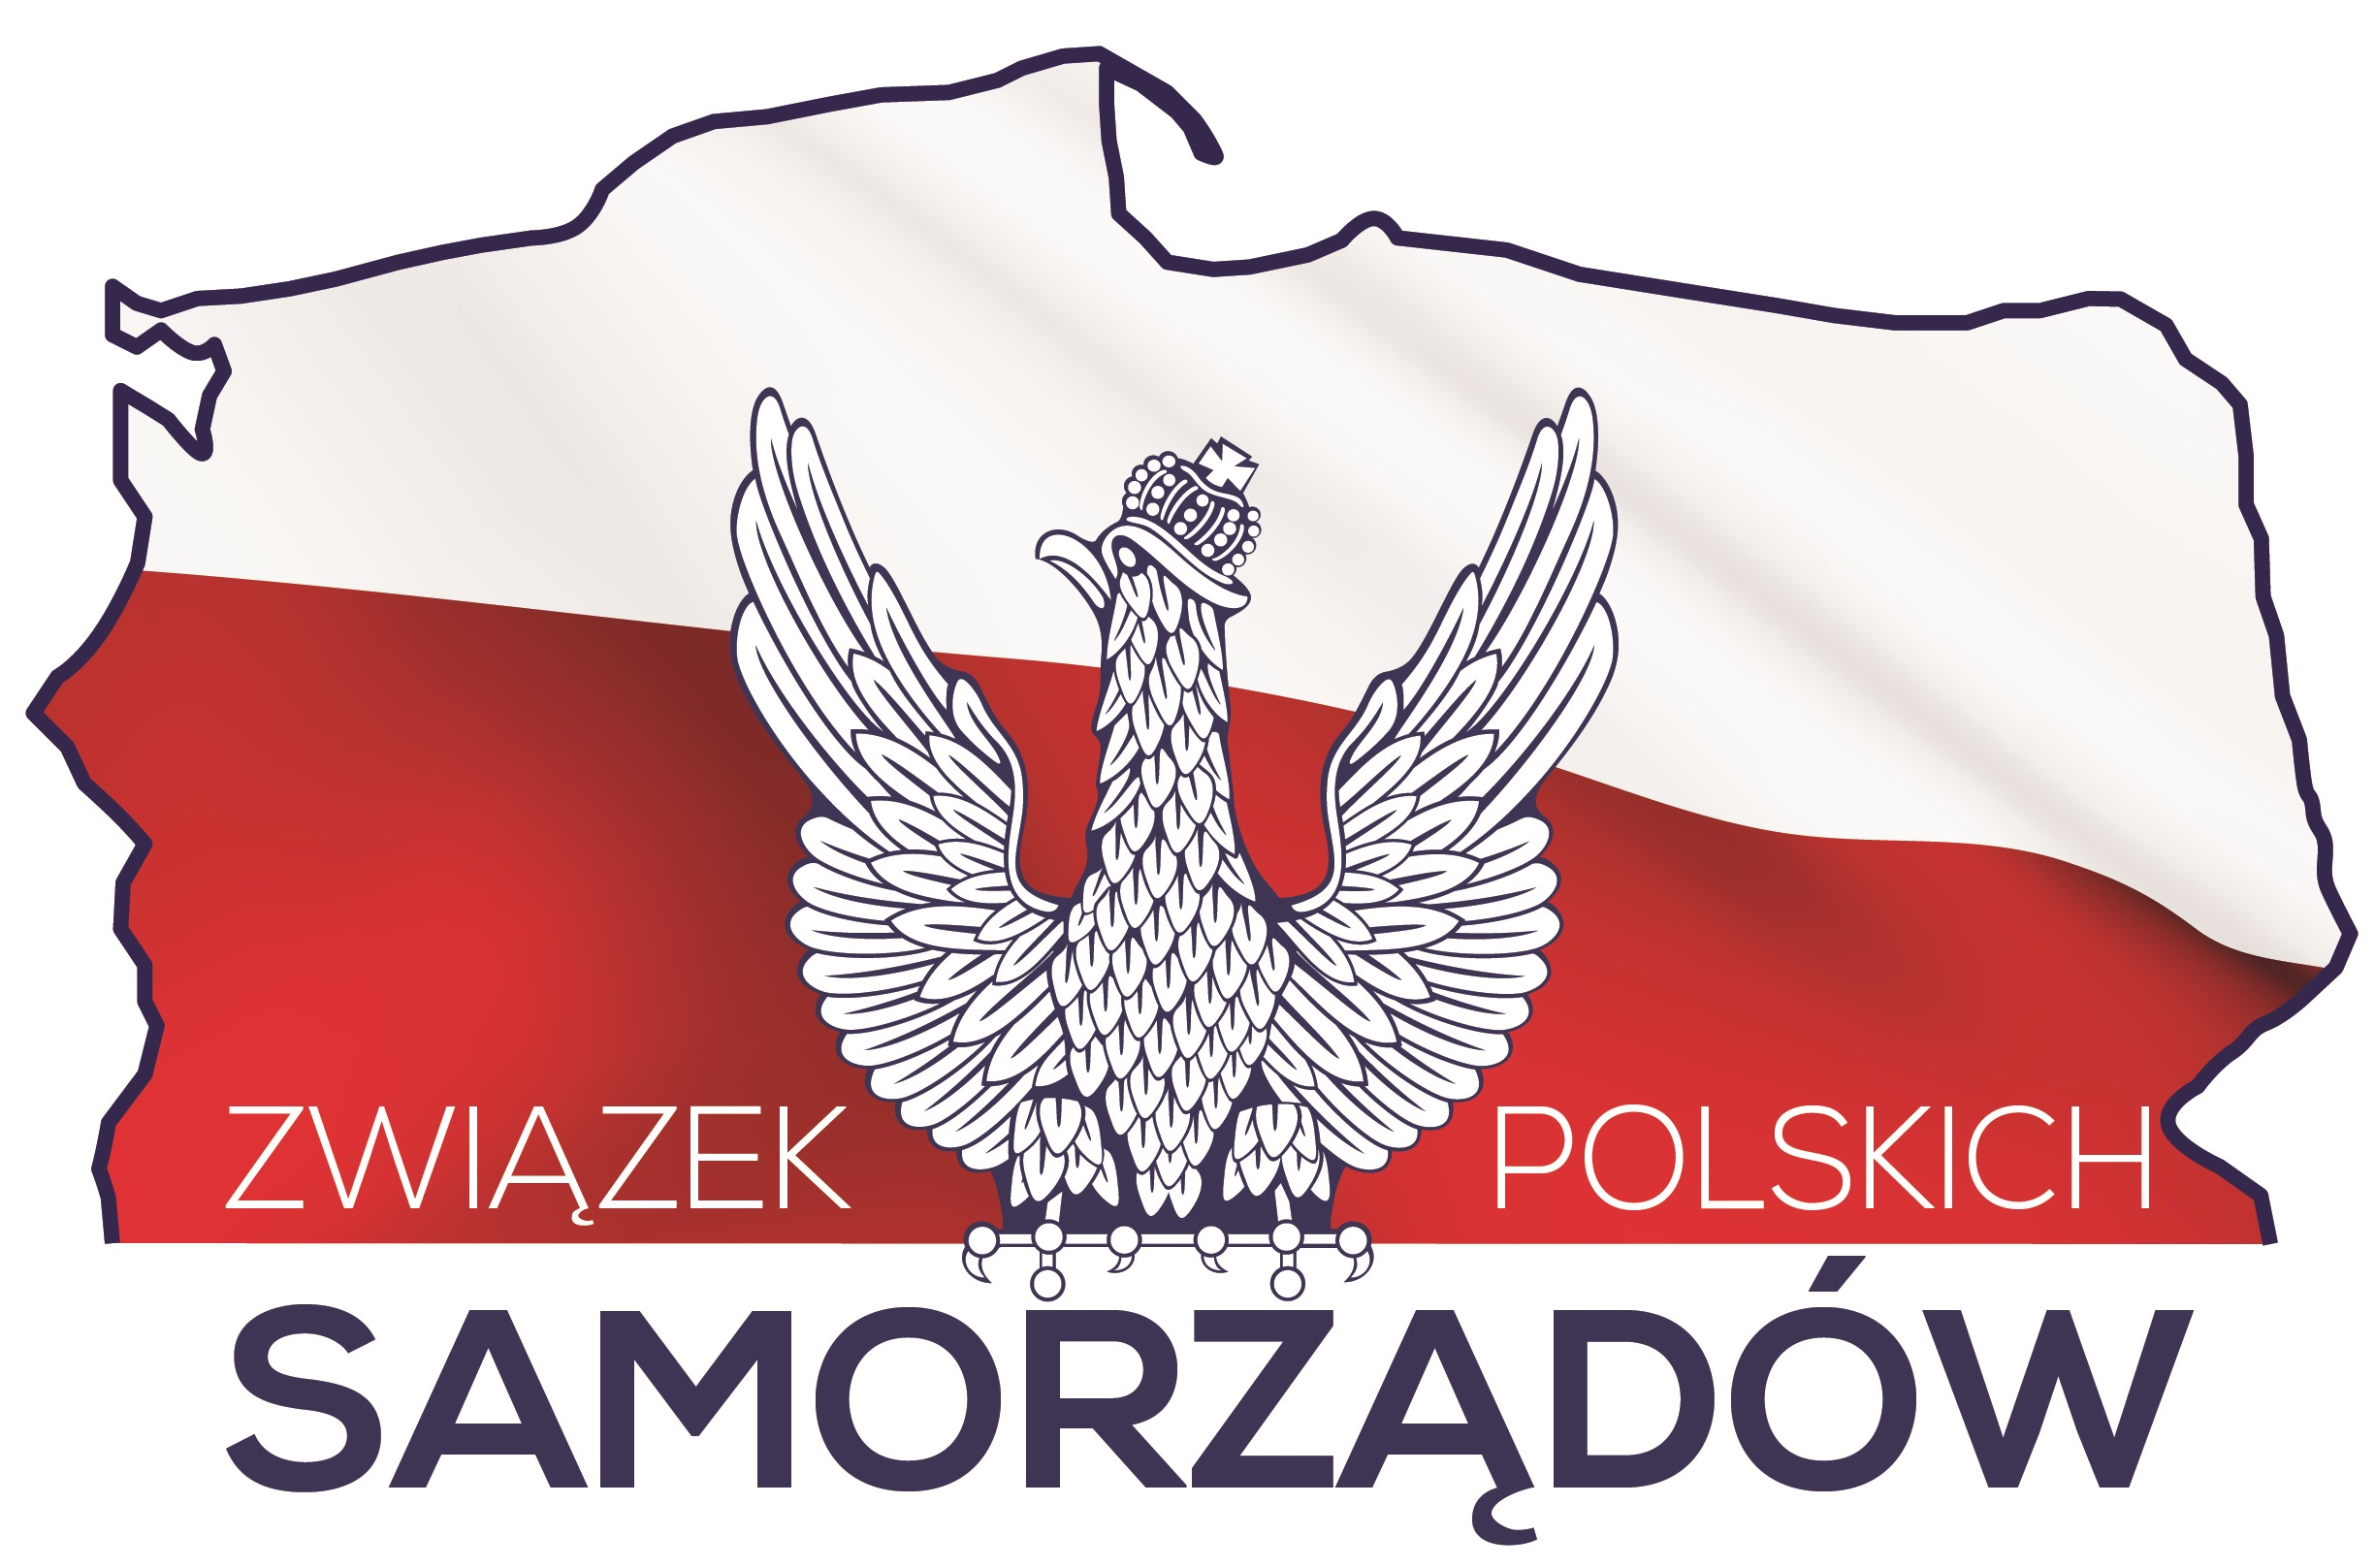 http://www.samorzadypolskie.pl/